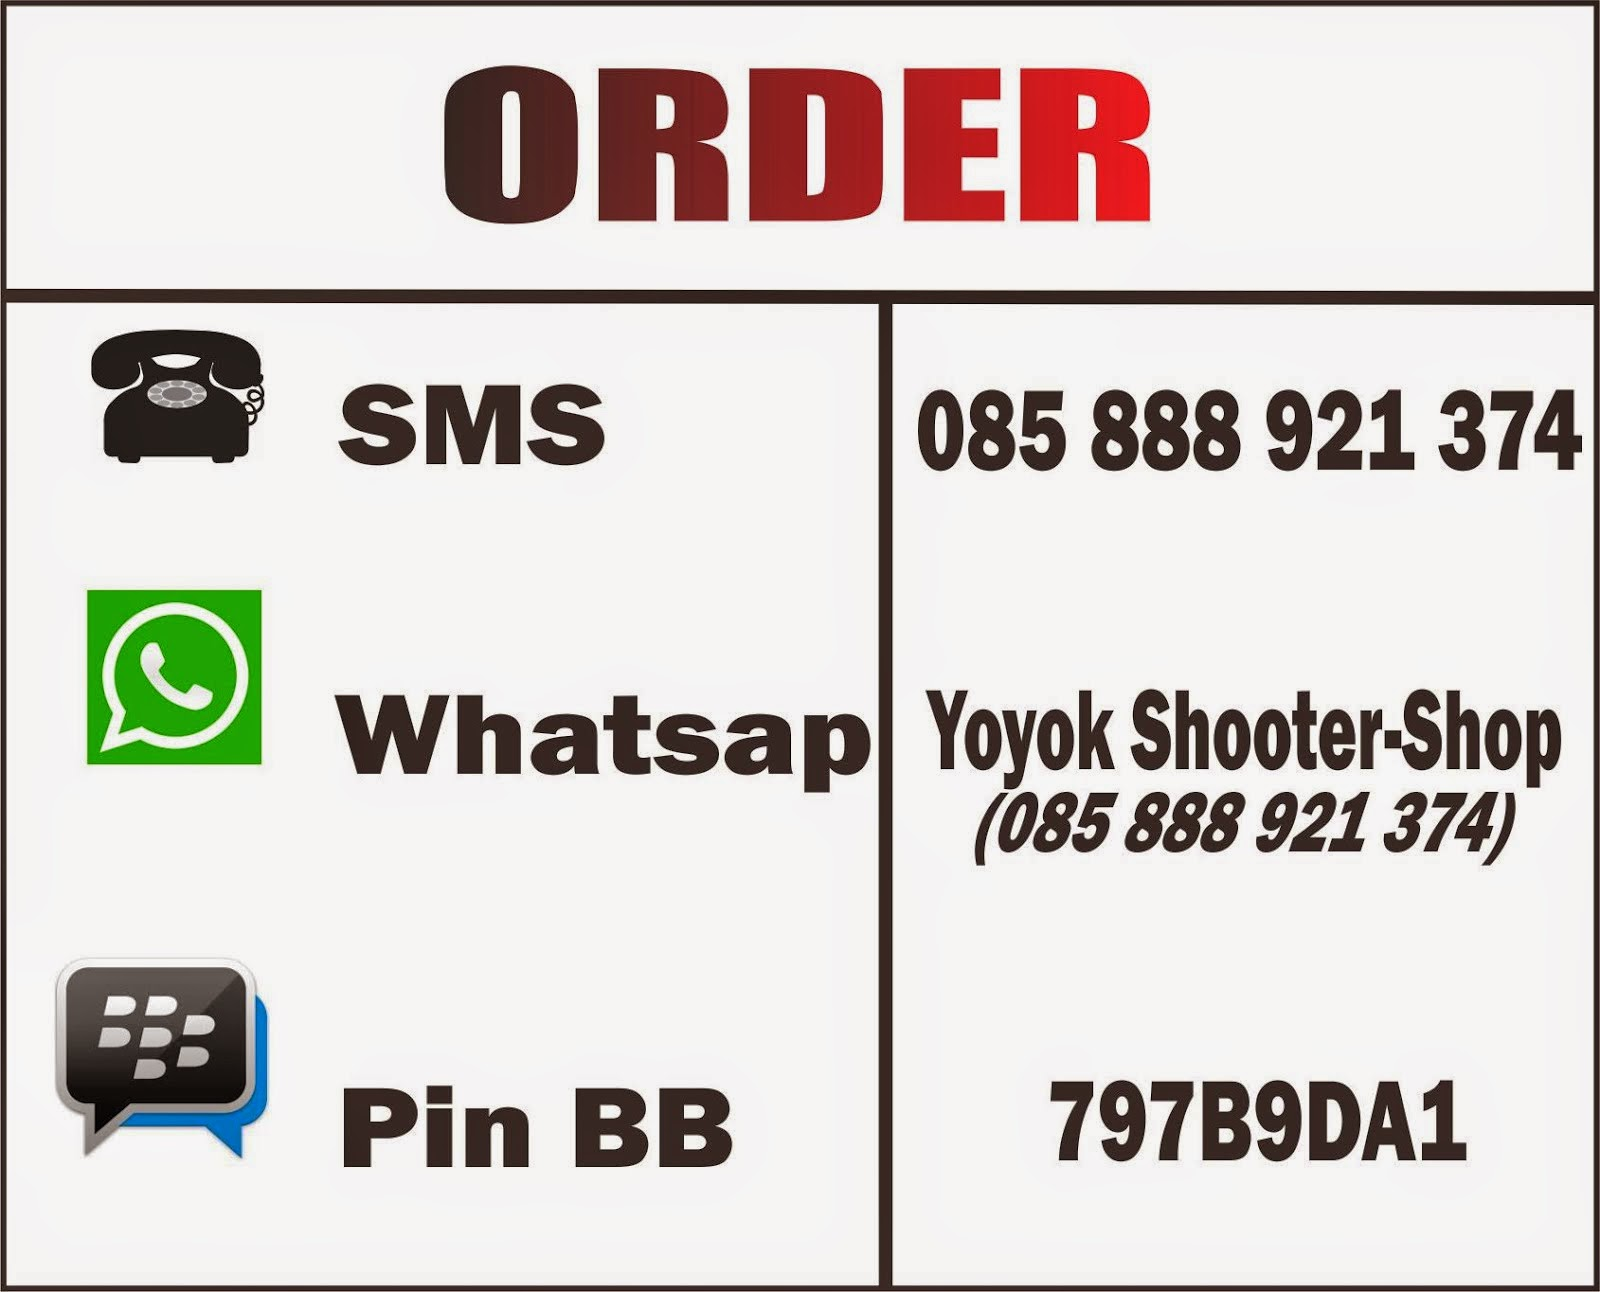 Contact Order